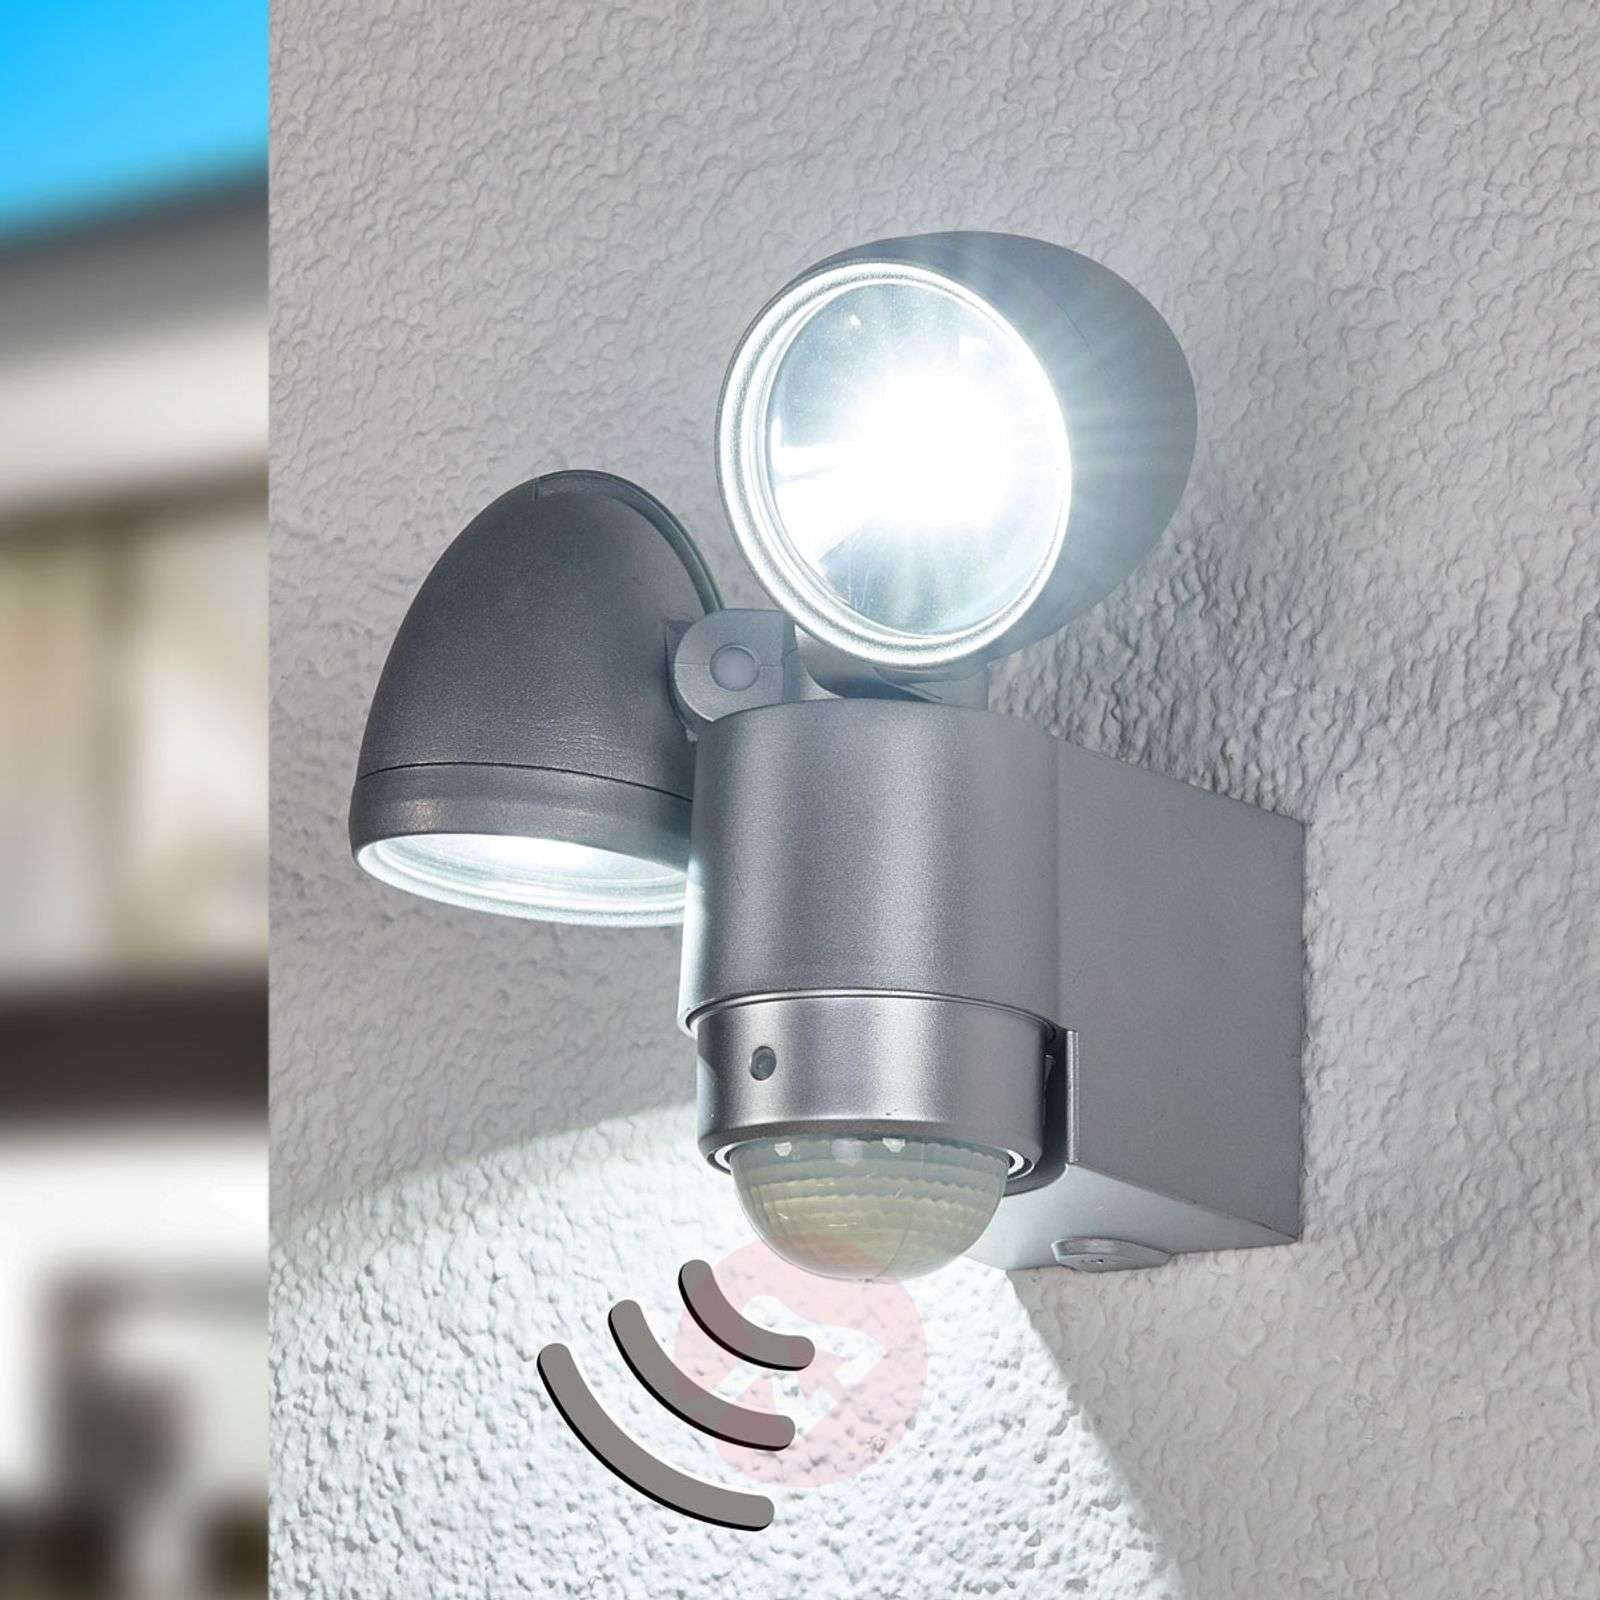 RADIAL Two Lamp LED Exterior Wall Spot | Lights.co.uk